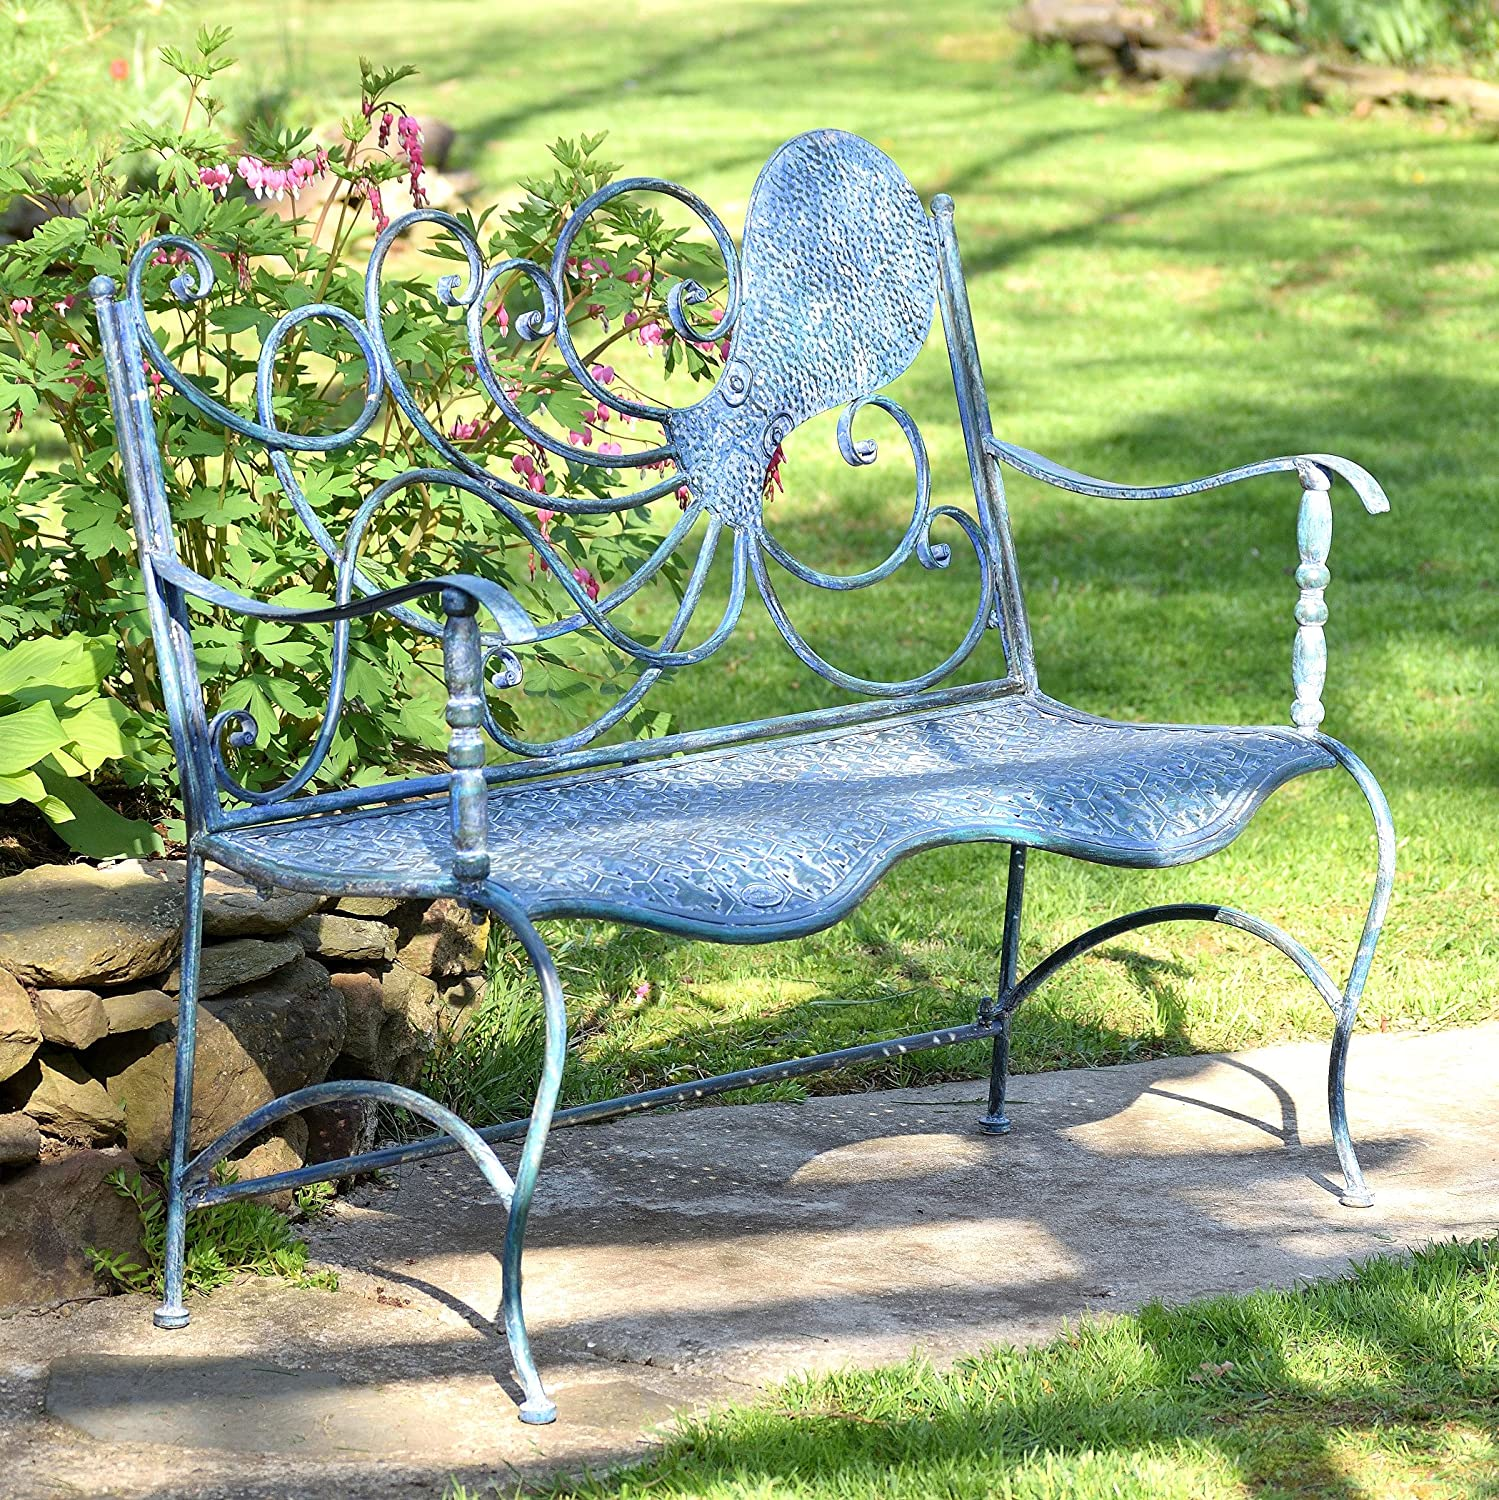 Superb Best Outdoor Bench Reviews 2019 High Quality And Evergreenethics Interior Chair Design Evergreenethicsorg